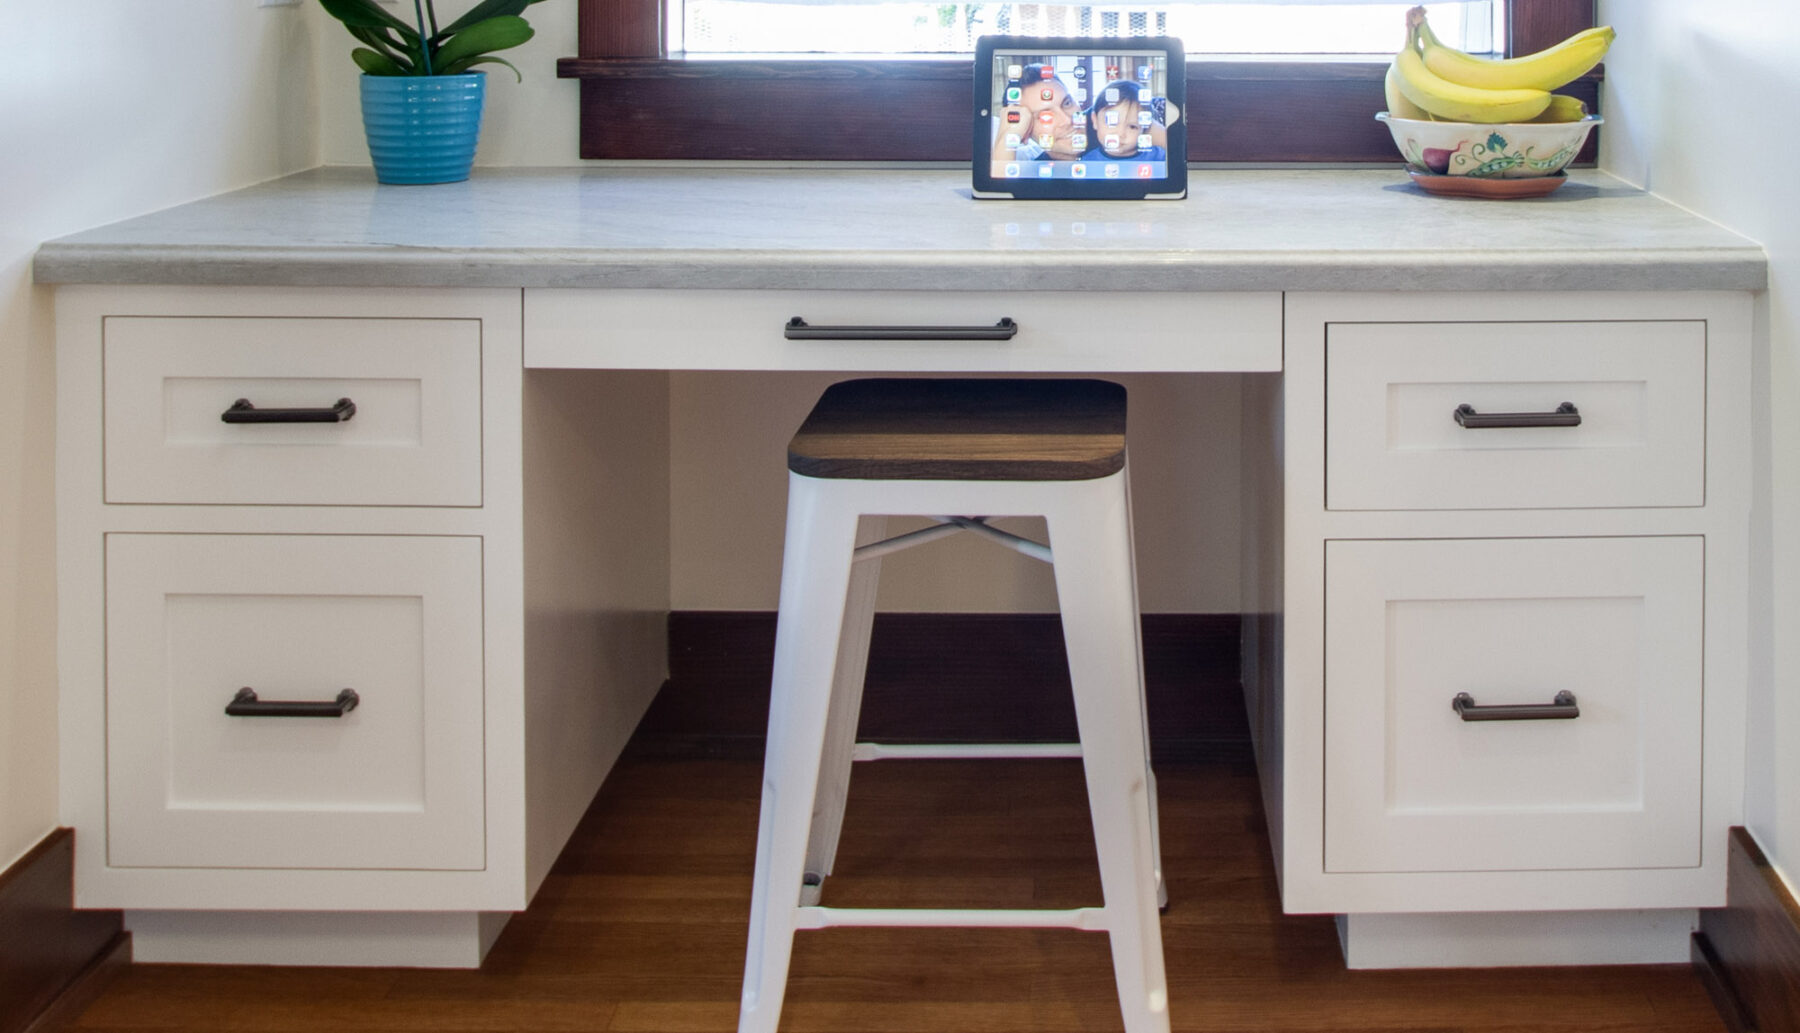 Integrated desk in Kitchen.